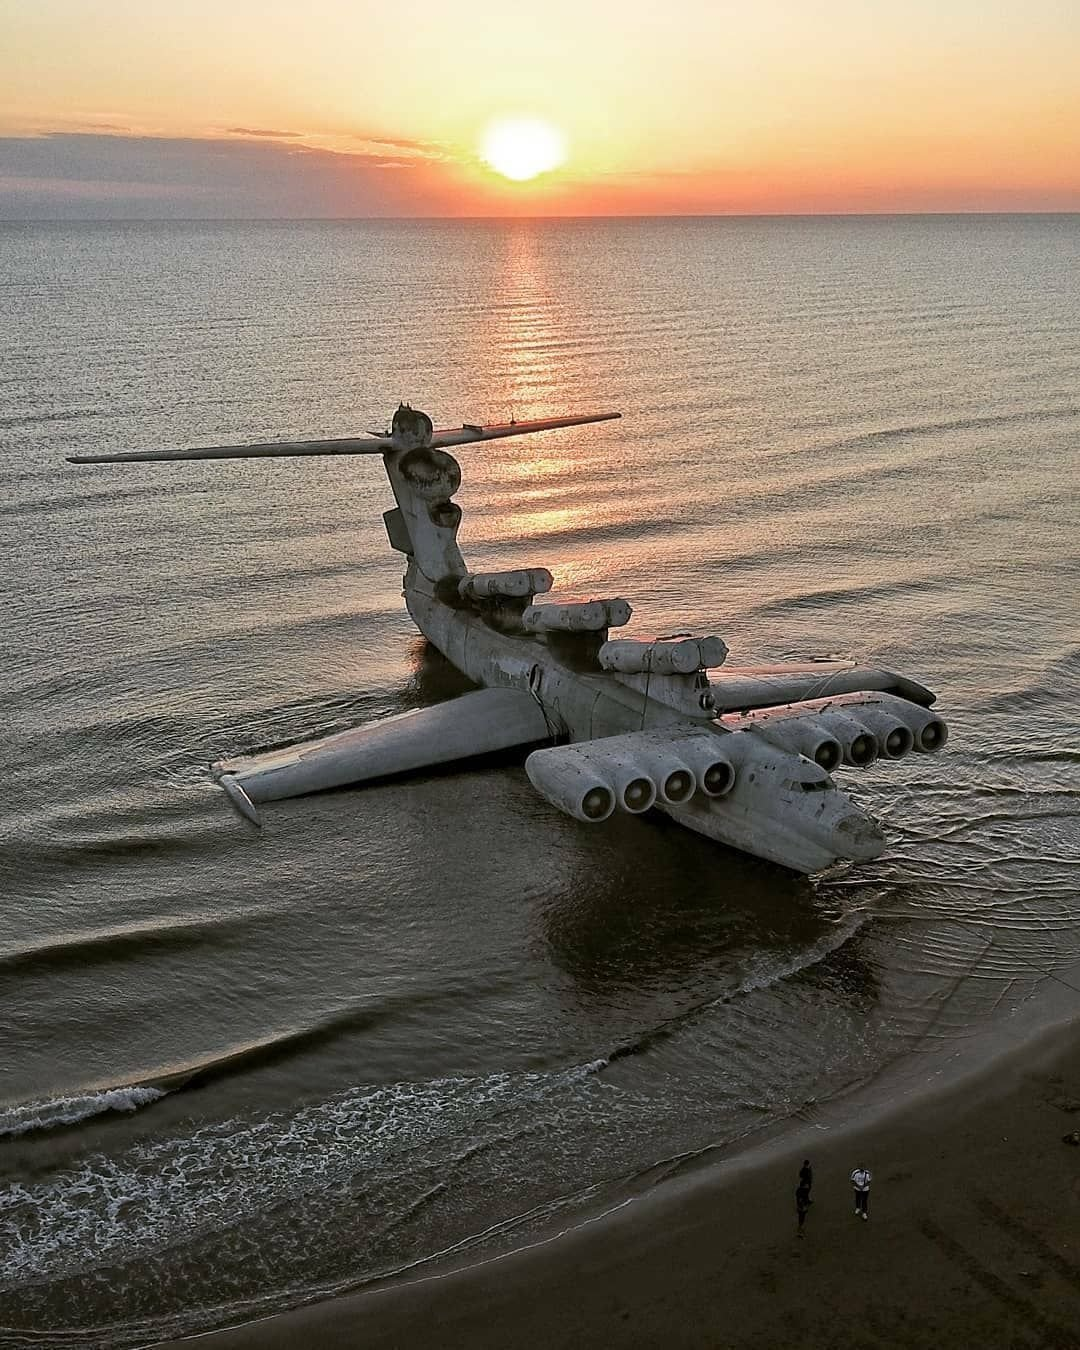 8 Reasons The Lun-Class Ekranoplan Is The Coolest Invention We Forgot